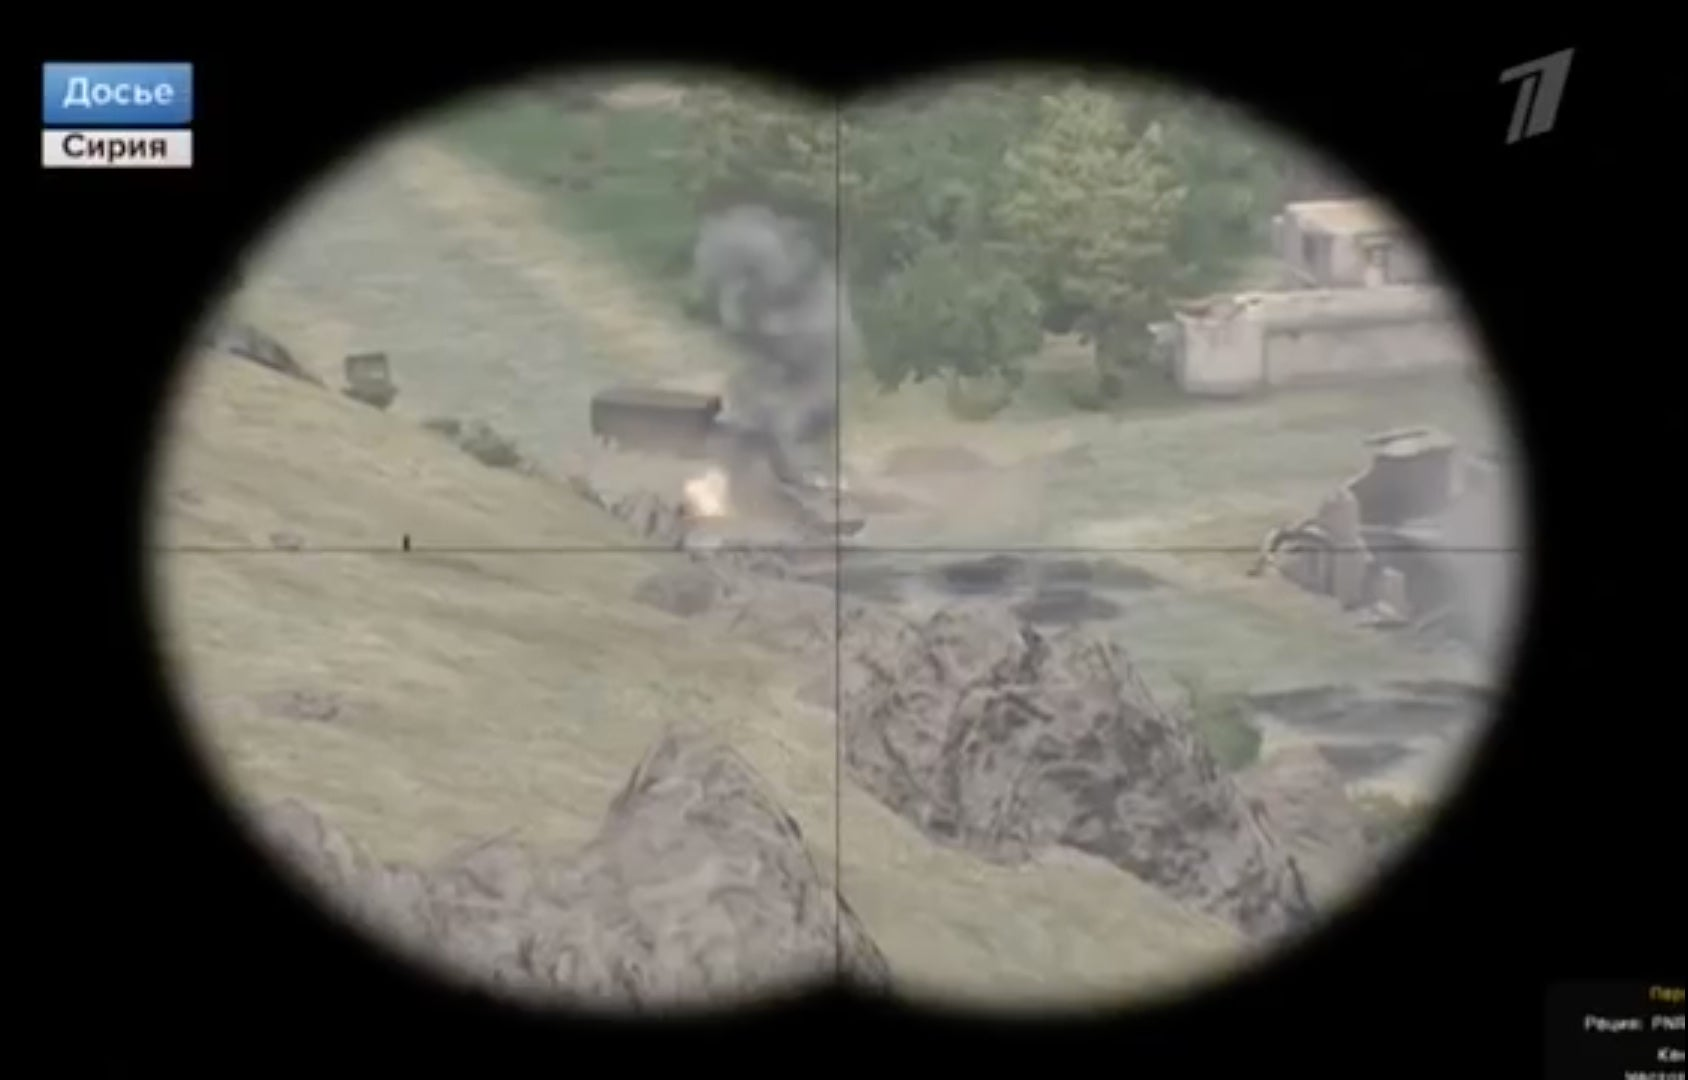 Russian TV Airs ArmA 3 Clip As Real War Footage